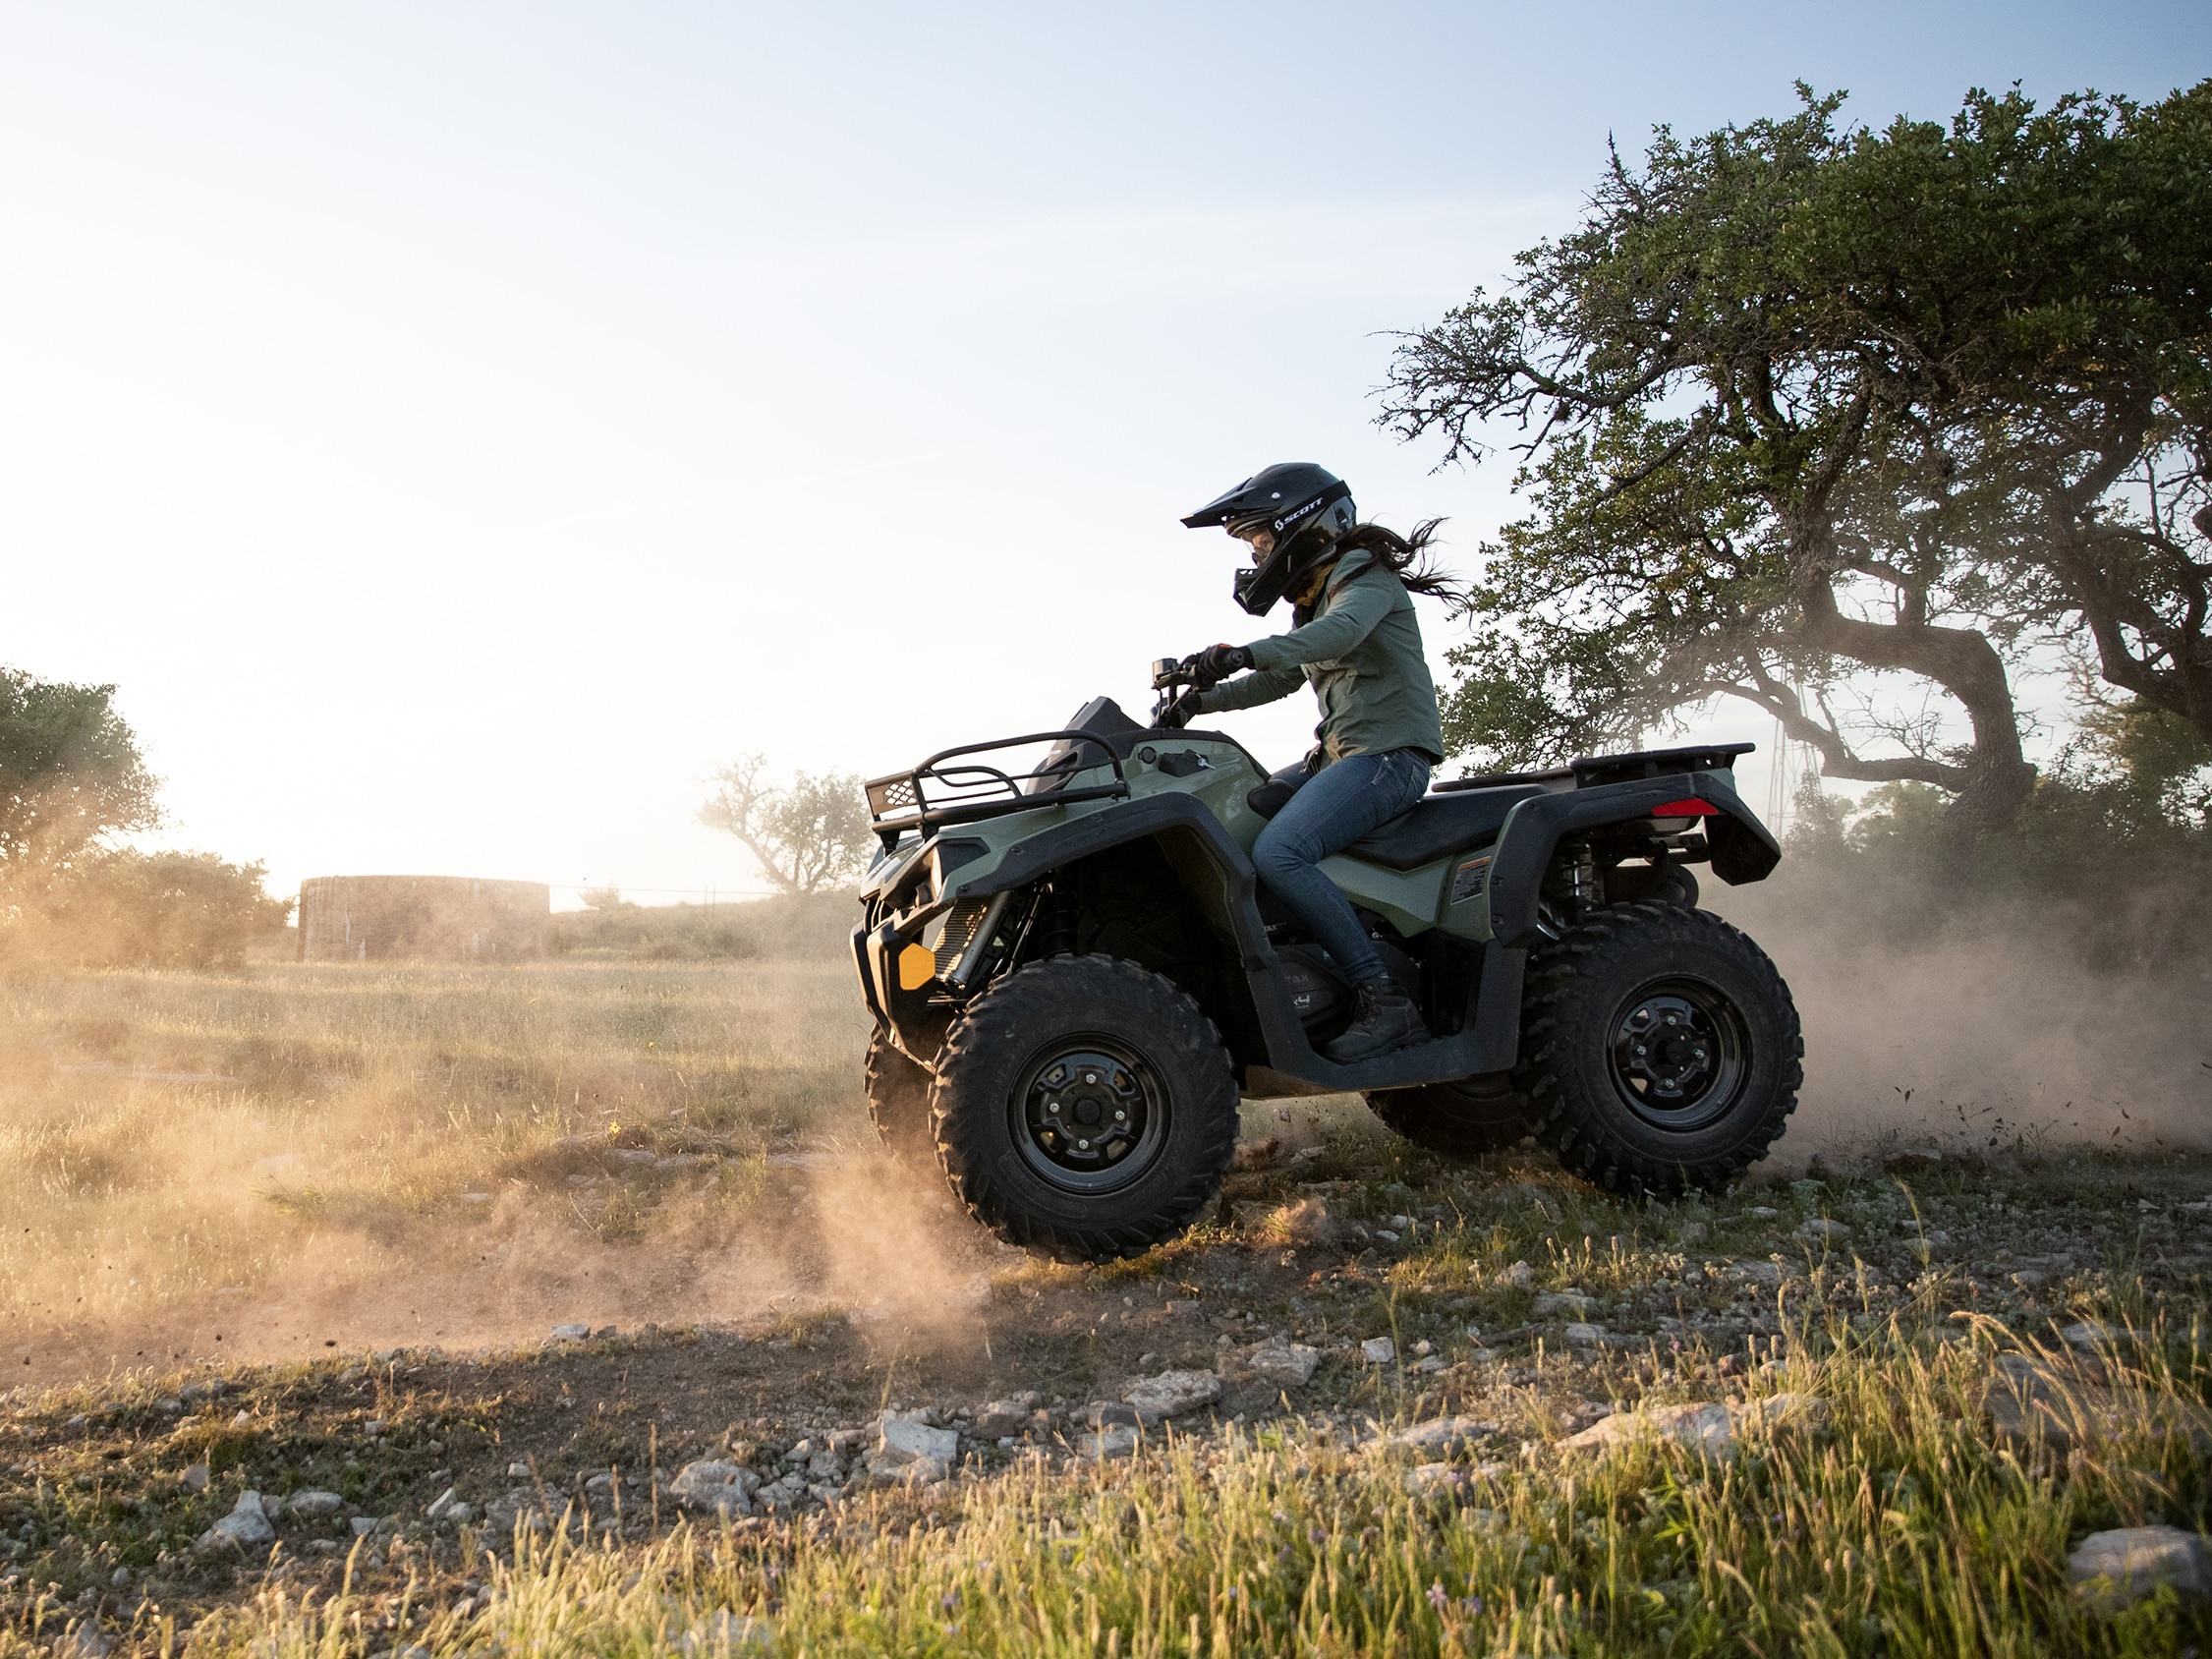 Una mujer conduciendo un ATV Outlander DPS 570 de Can-Am